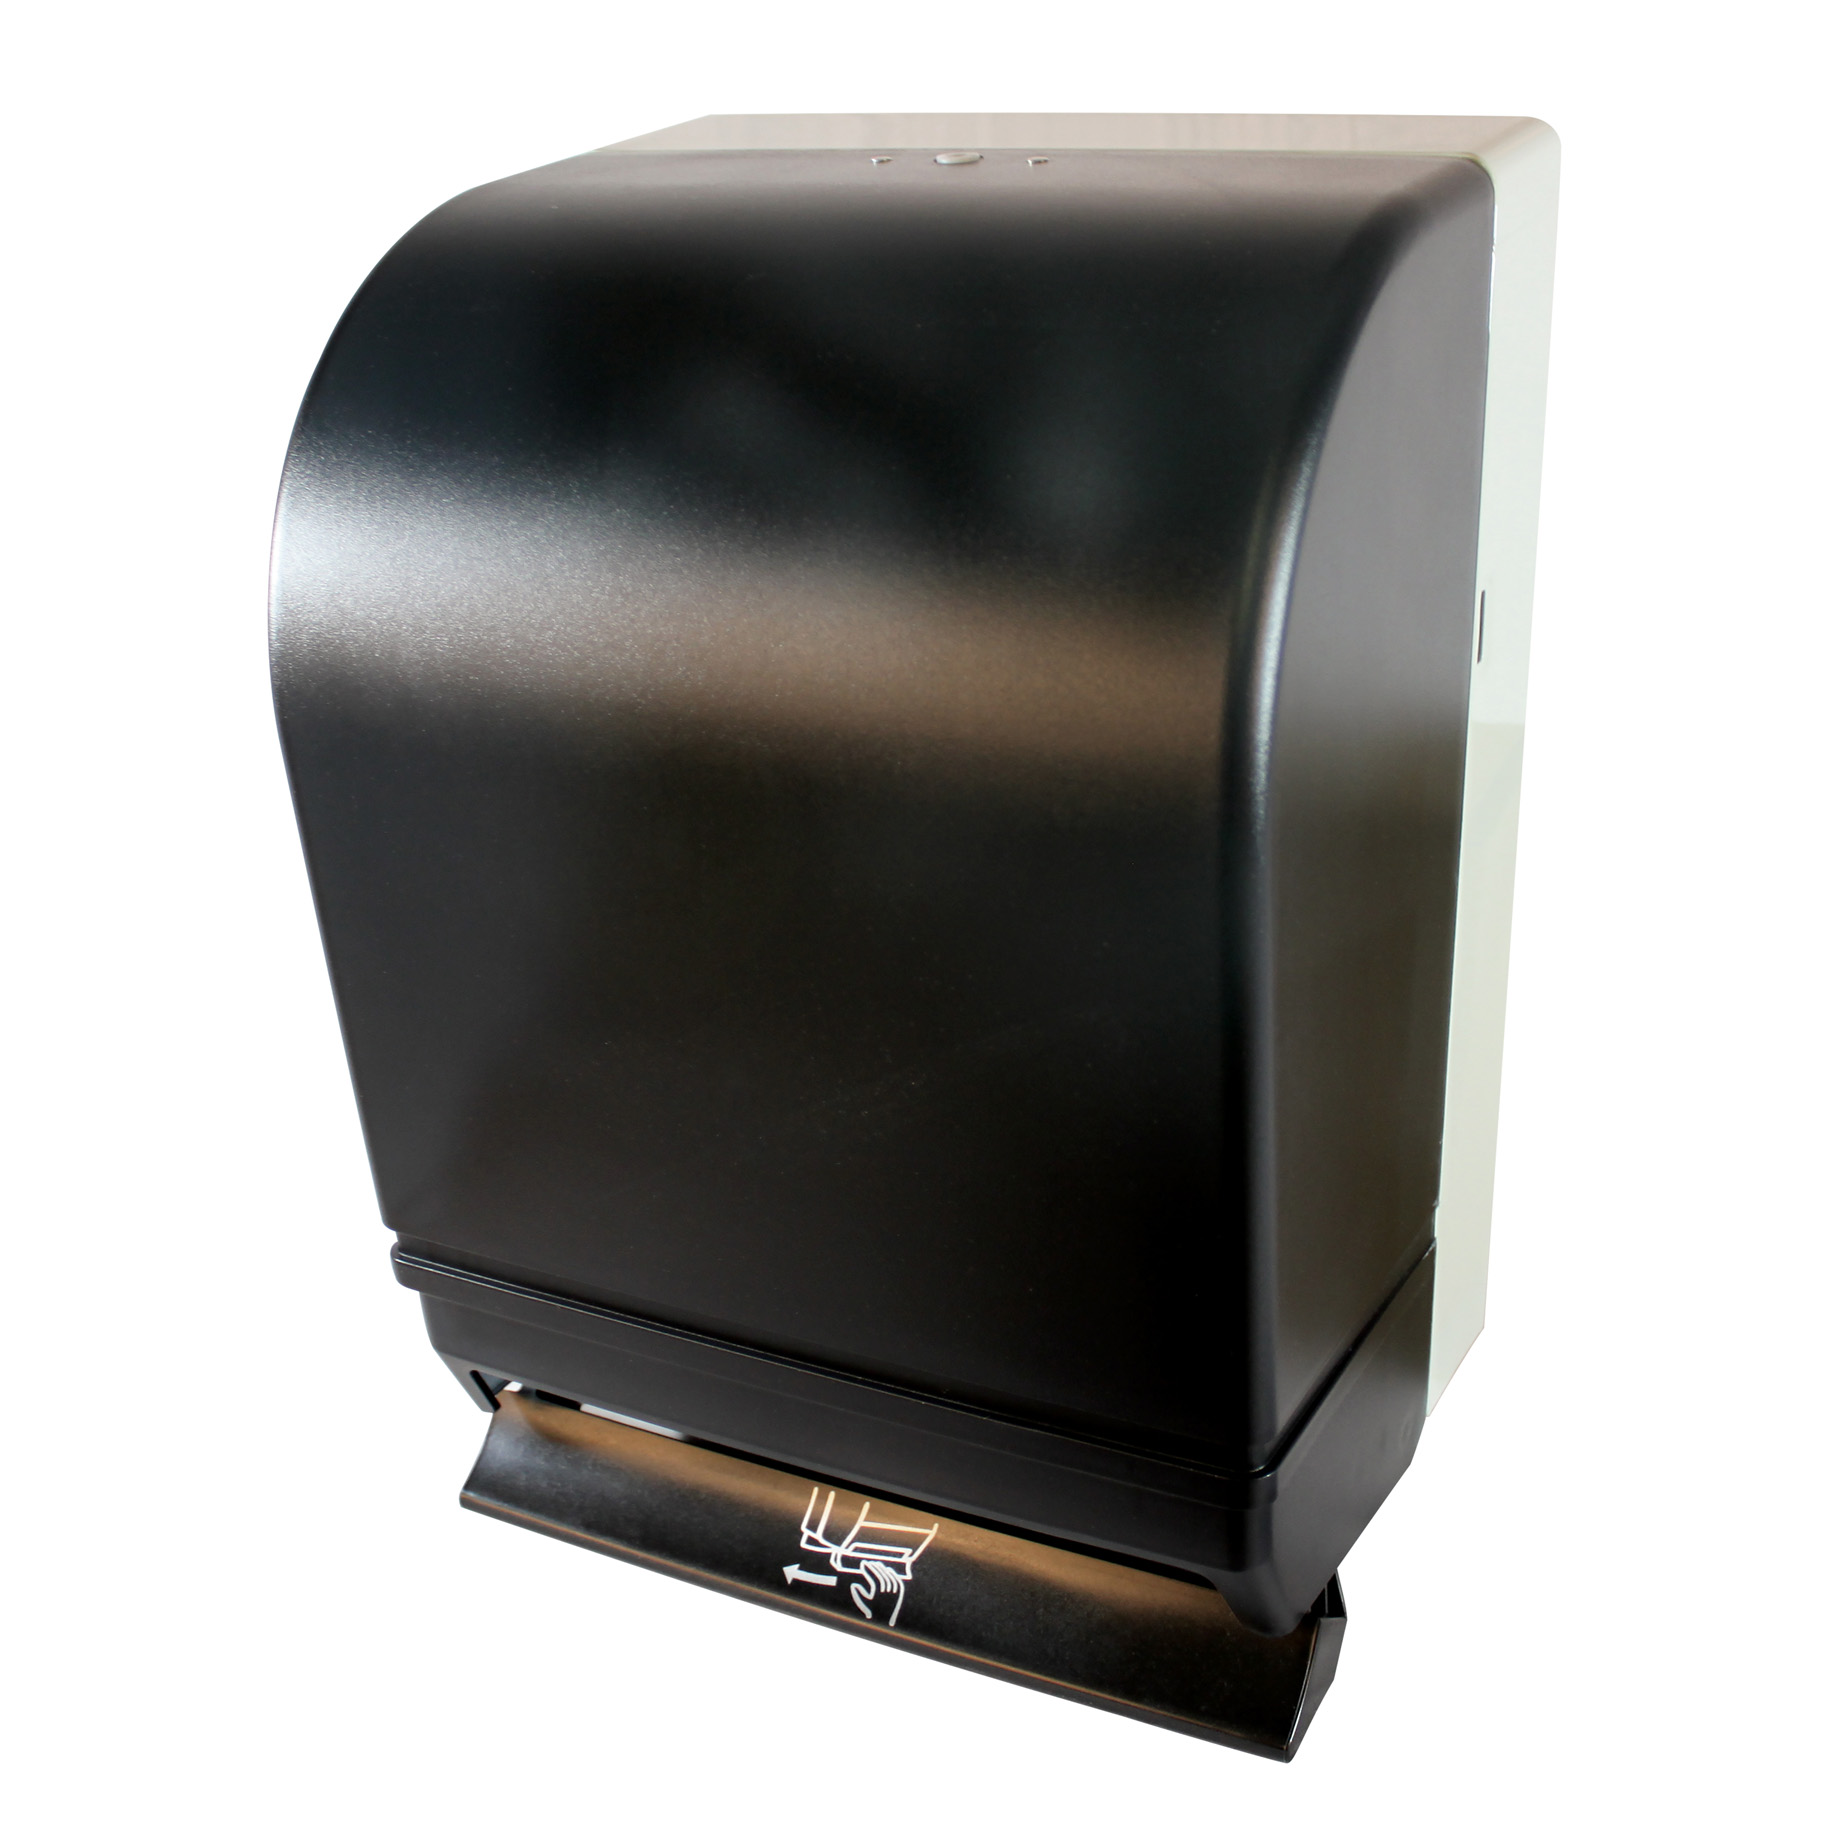 Impact Products 4099 paper towel dispenser